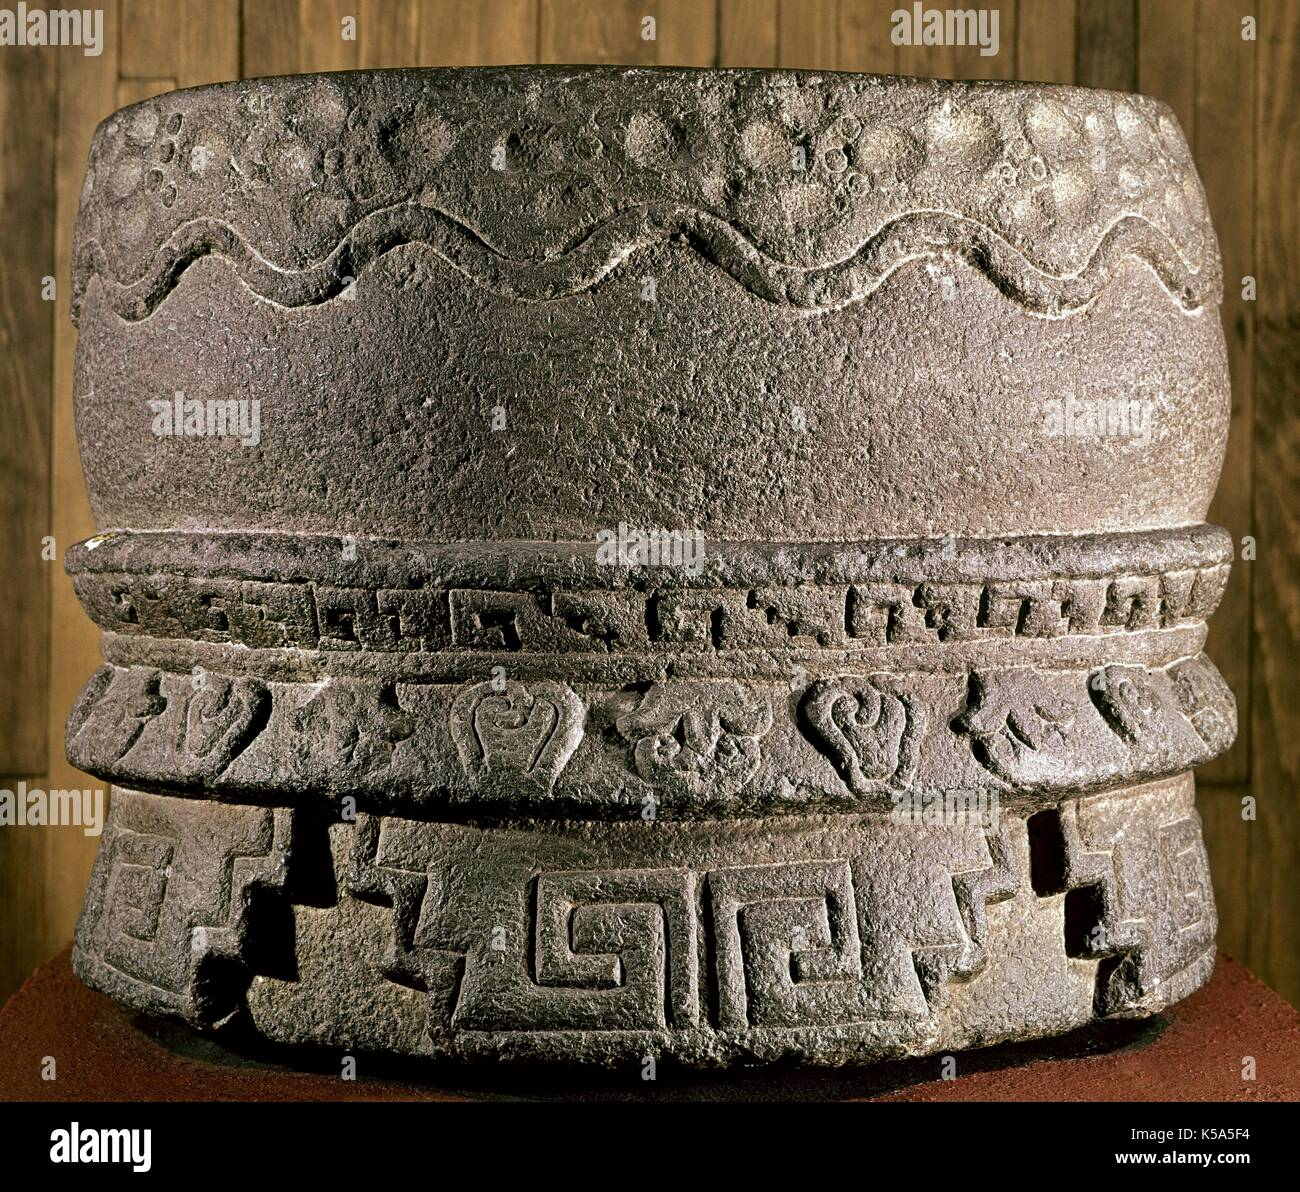 Precolumbian Period. Aztec. Huehuetl. Representacion made in stone of an Aztec drum. From Mexico DF. Anthropology Museum of Mexico. - Stock Image